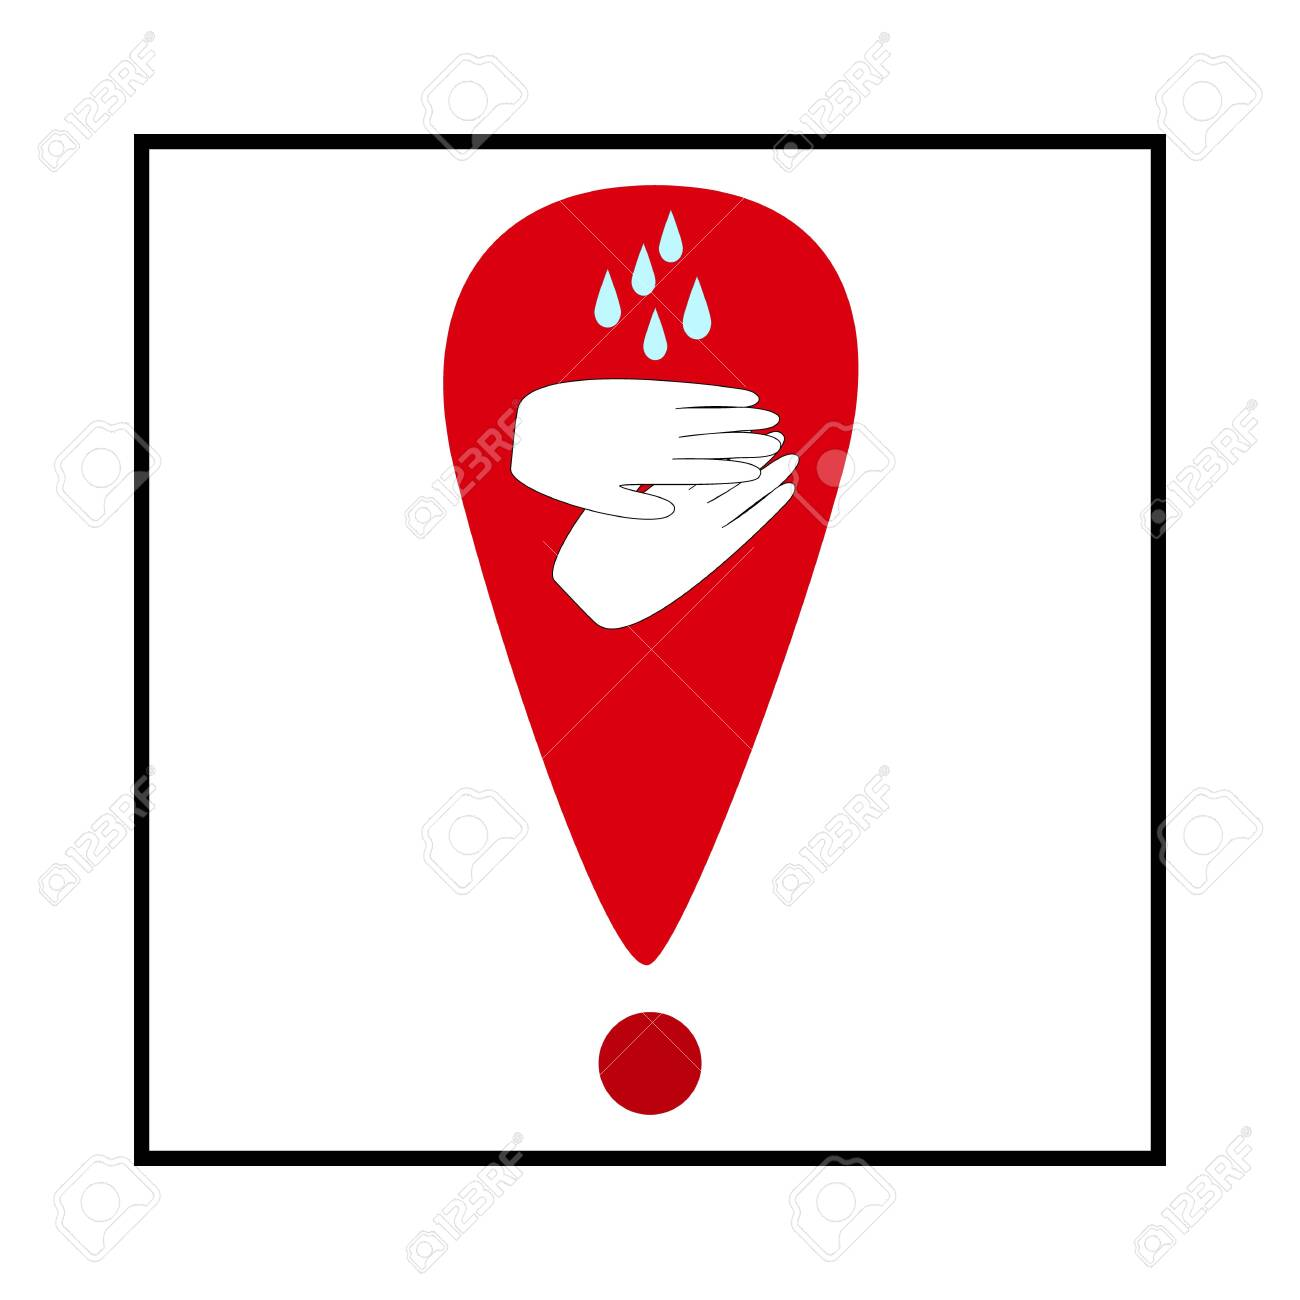 Warning. Covid-19. Wash your hands often soapy water. Clean hands icon. Symbol of safety for health and protection against coronavirus. For banner, flyer, warning. - 150071805